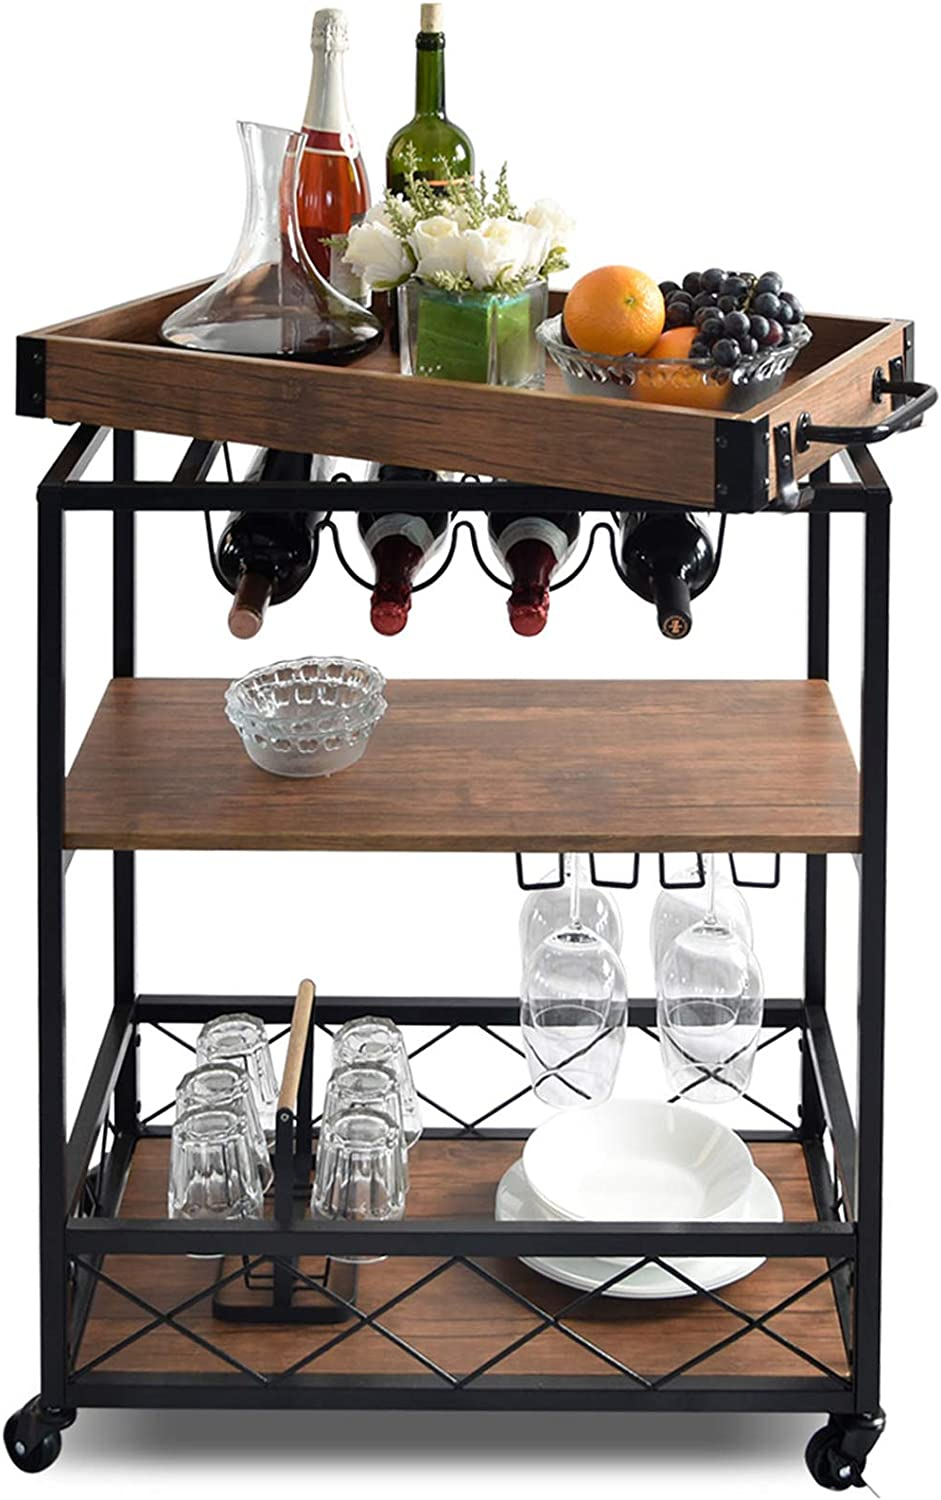 NSdirect Kitchen Cart,Kitchen Bar&Serving Cart Rolling Utility Storage Cart with 3-Tier Shelves,Metal Wine Rack Storage and Glass Bottle Holder,Removable Wood Top Box Container with Hook Rack,Brown